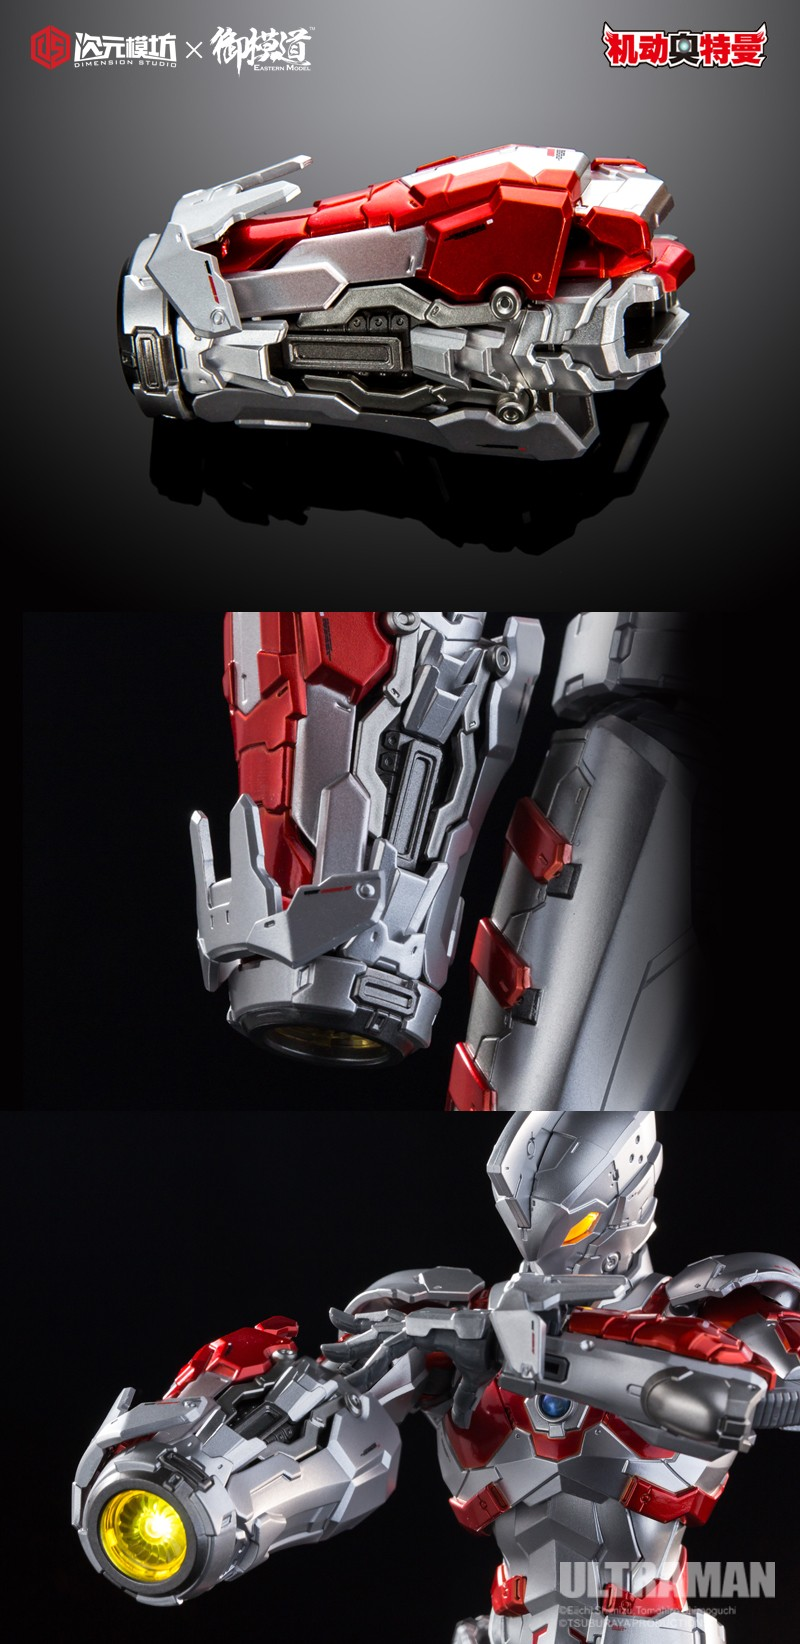 male - NEW PRODUCT: Dimension Mould X X Moto Road: 1/6 Mobile Ultraman Alloy Finished Series - Ess Altman 18214110